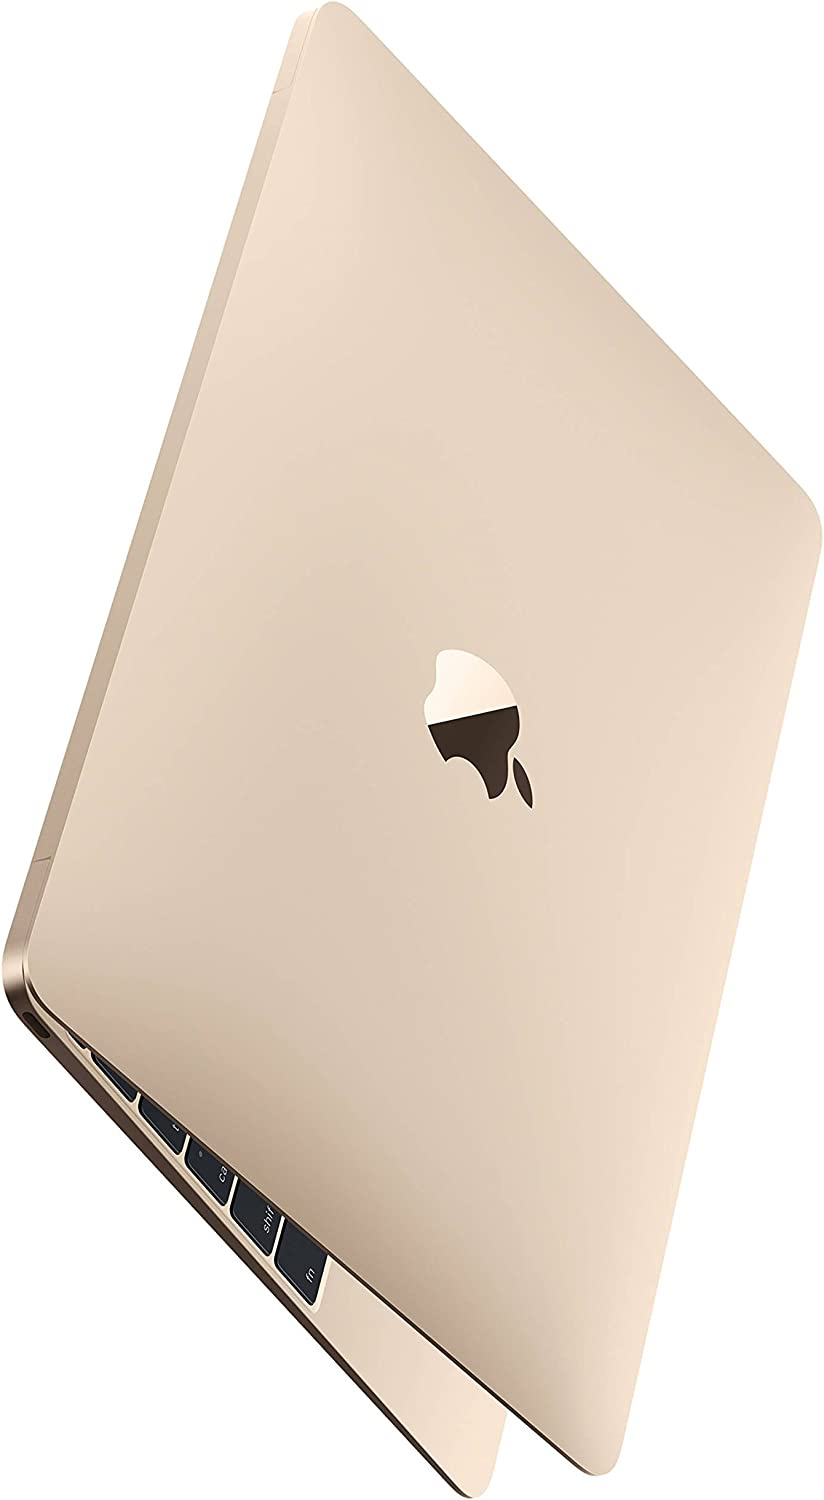 "Apple Gold Macbook - MK4N2LL/A Core M-5Y51 1.2GHz (up to 2.6GHz), 8GB RAM,512GB SSD, 12"" Retina IPS, Laptop (Renewed)"